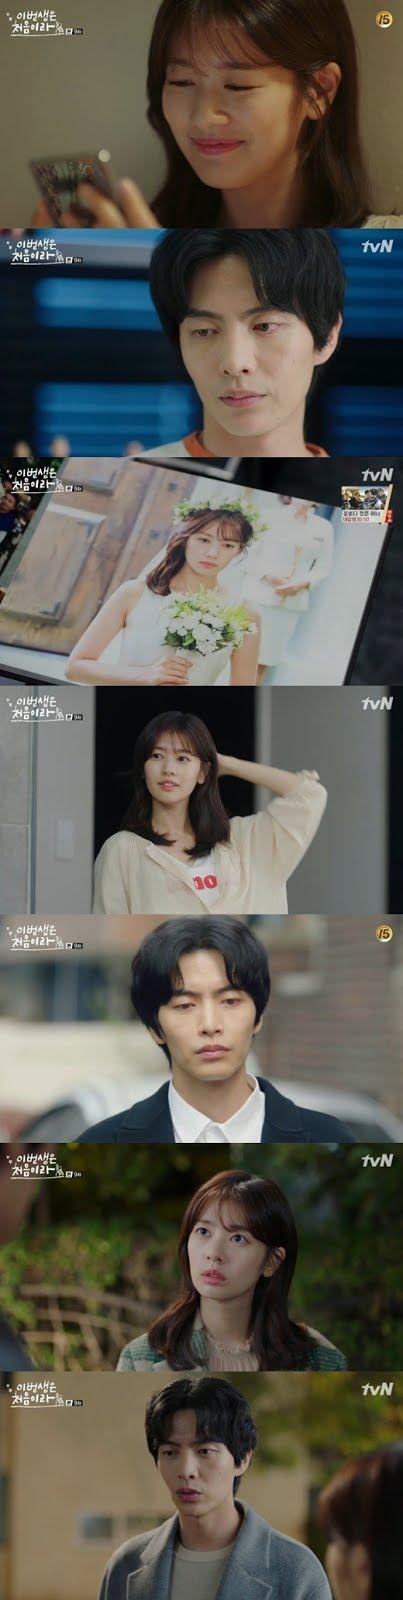 [Spoilers] Because This Is My First Life E09 + Rating